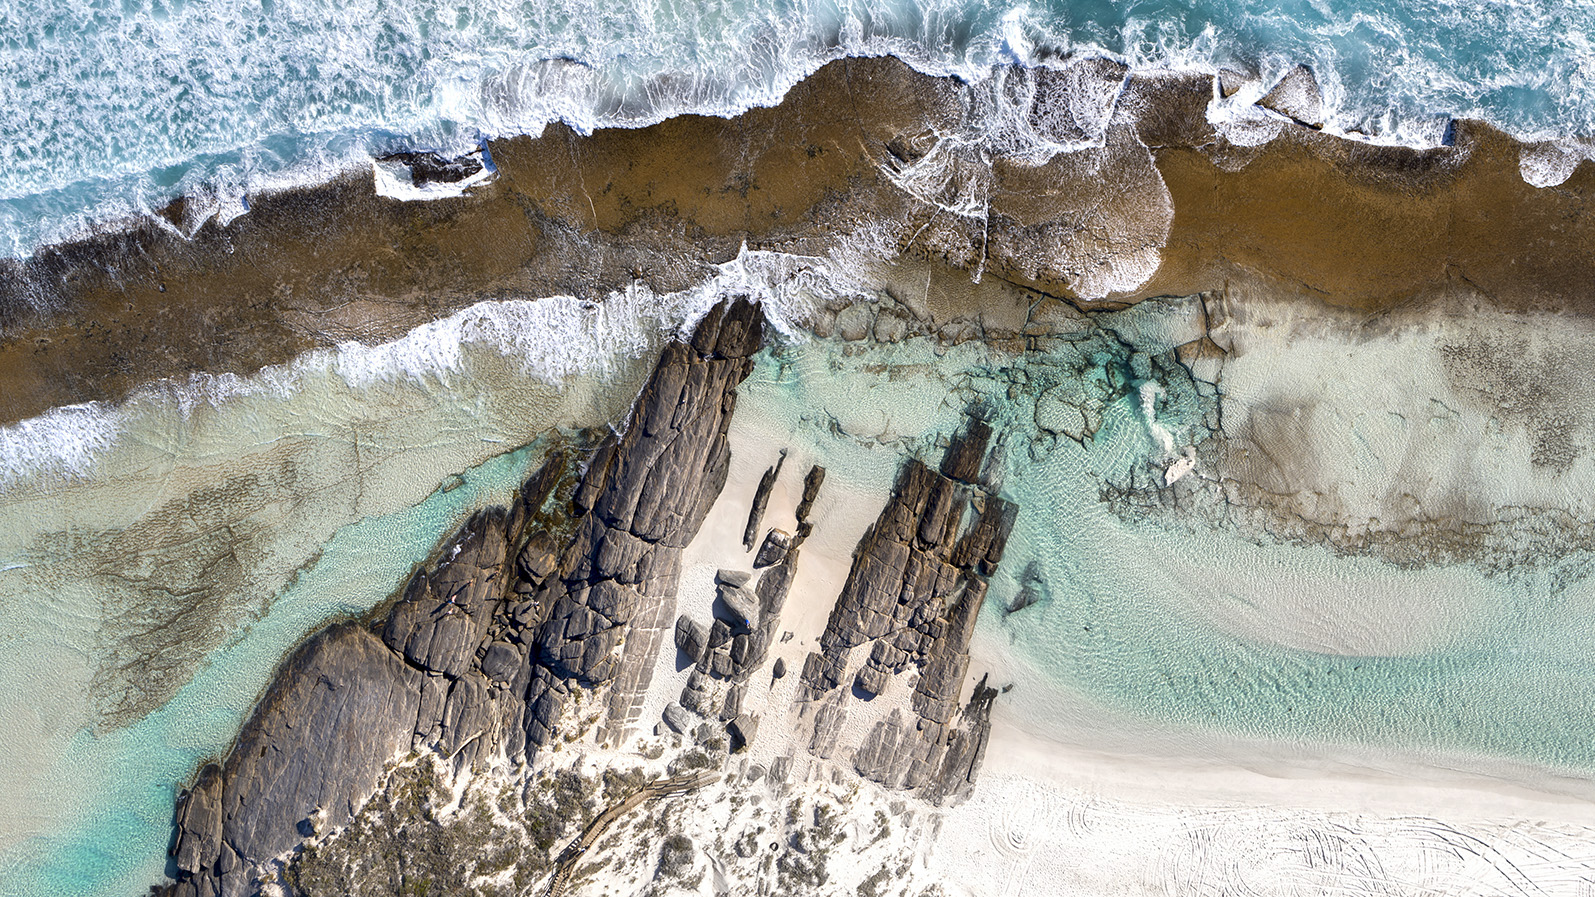 010 - Jason Mazur - '11 Mile Beach, Esperance'